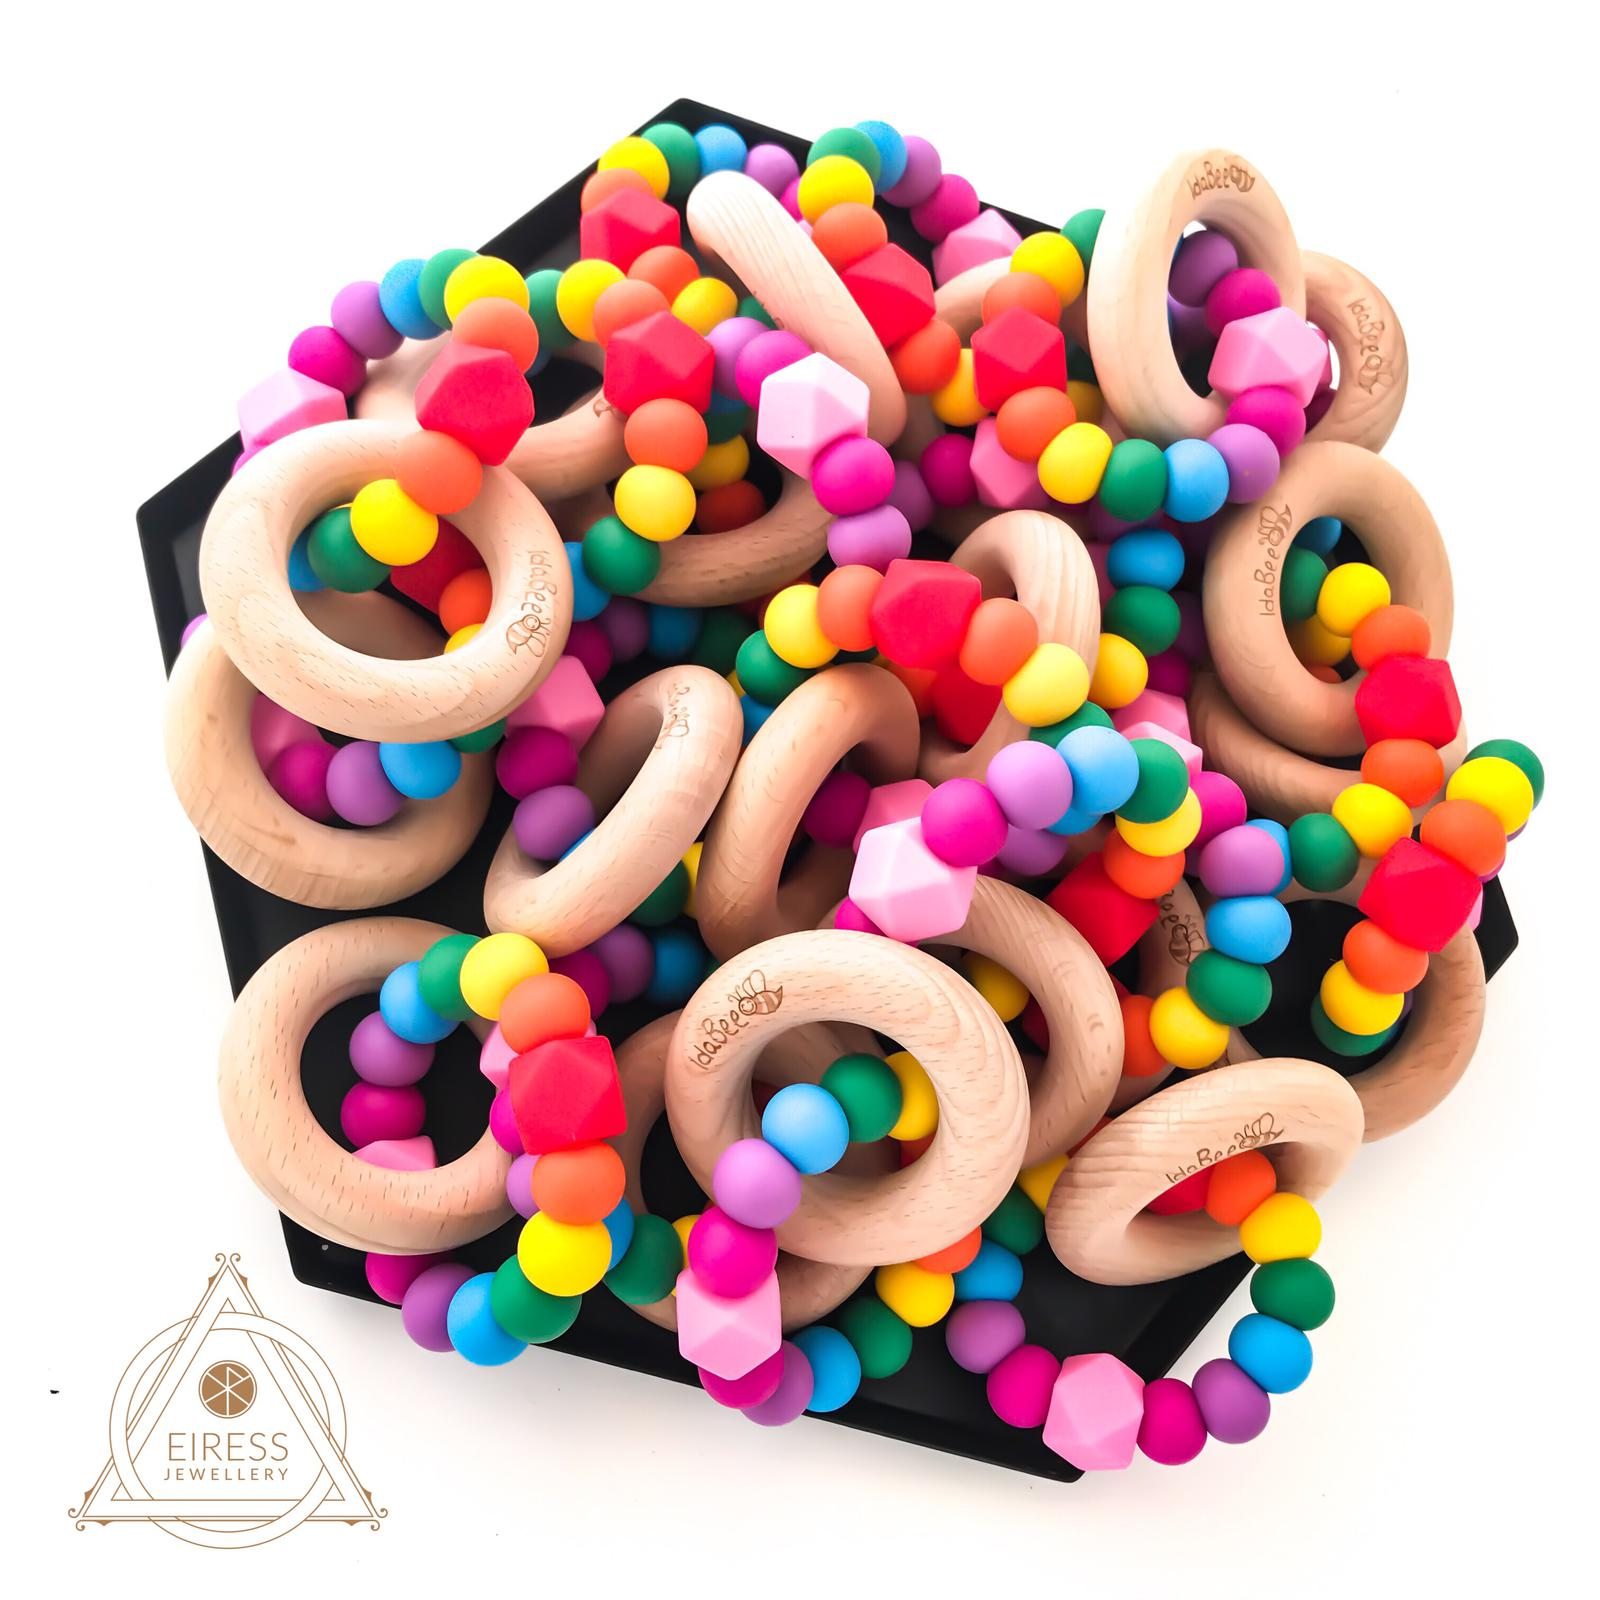 IdaBee Ellipse Rainbow Teethers